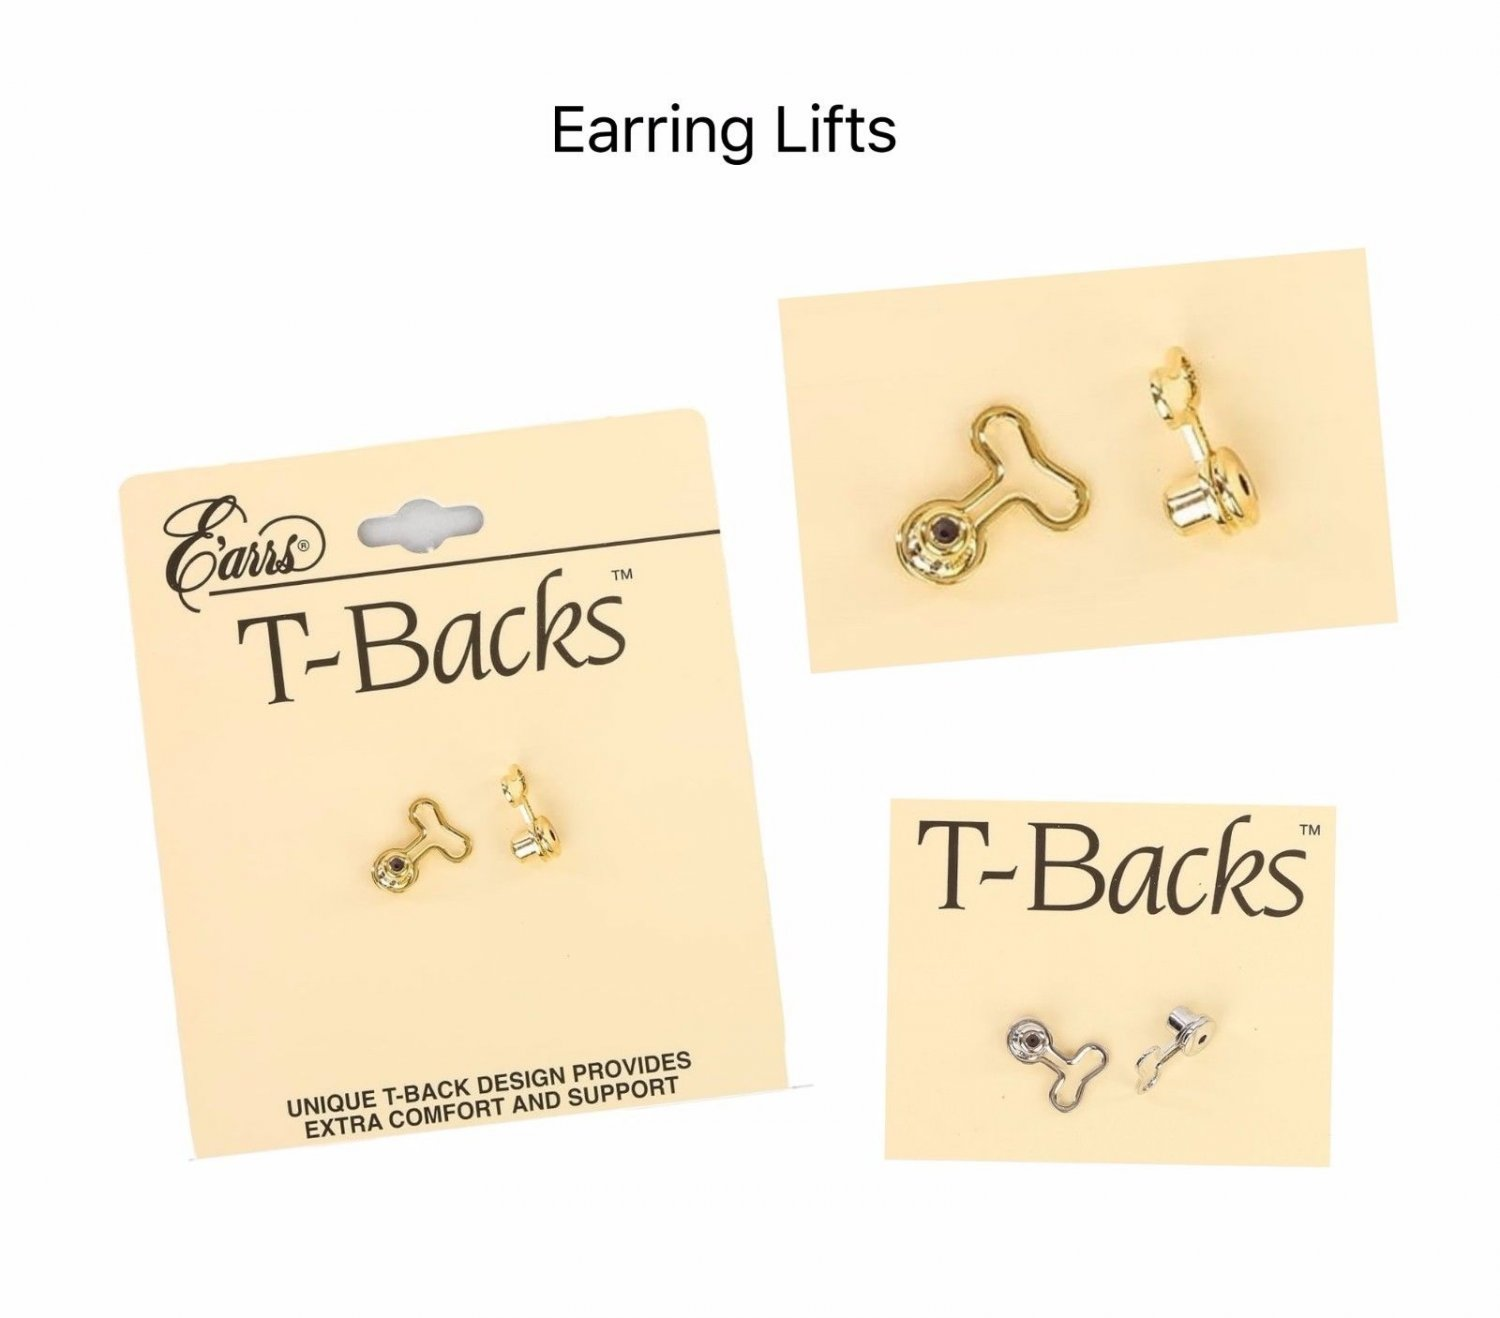 Earrs T Backs Earring Lifts Pierced Ear Lobe Support Stabilizer Stud / Post